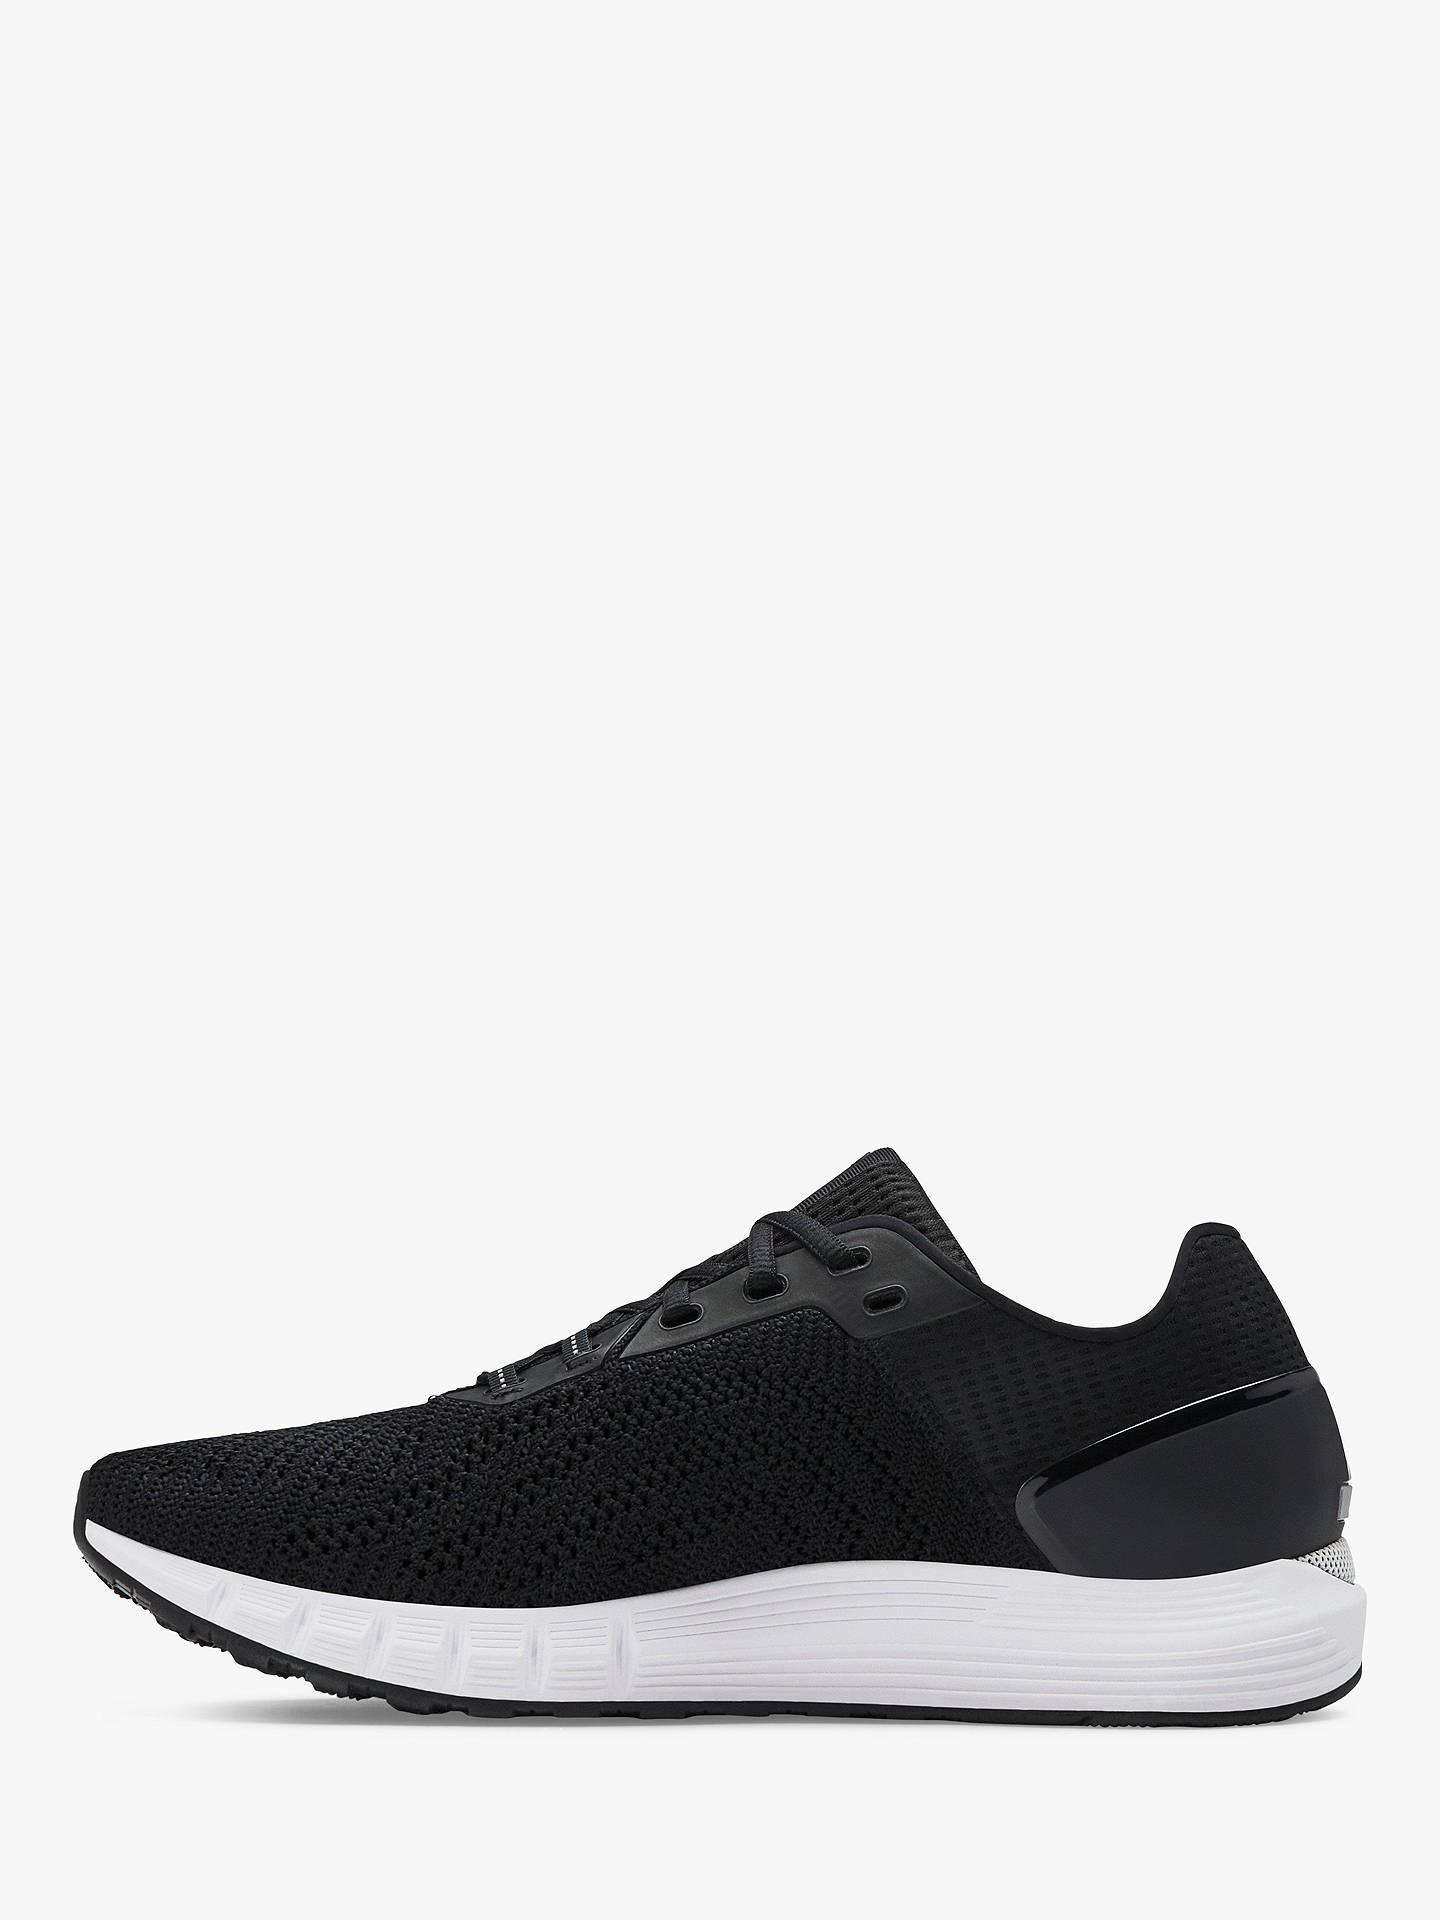 size 40 2a527 f6398 Under Armour HOVR Sonic 2.0 Men's Running Shoes, Black